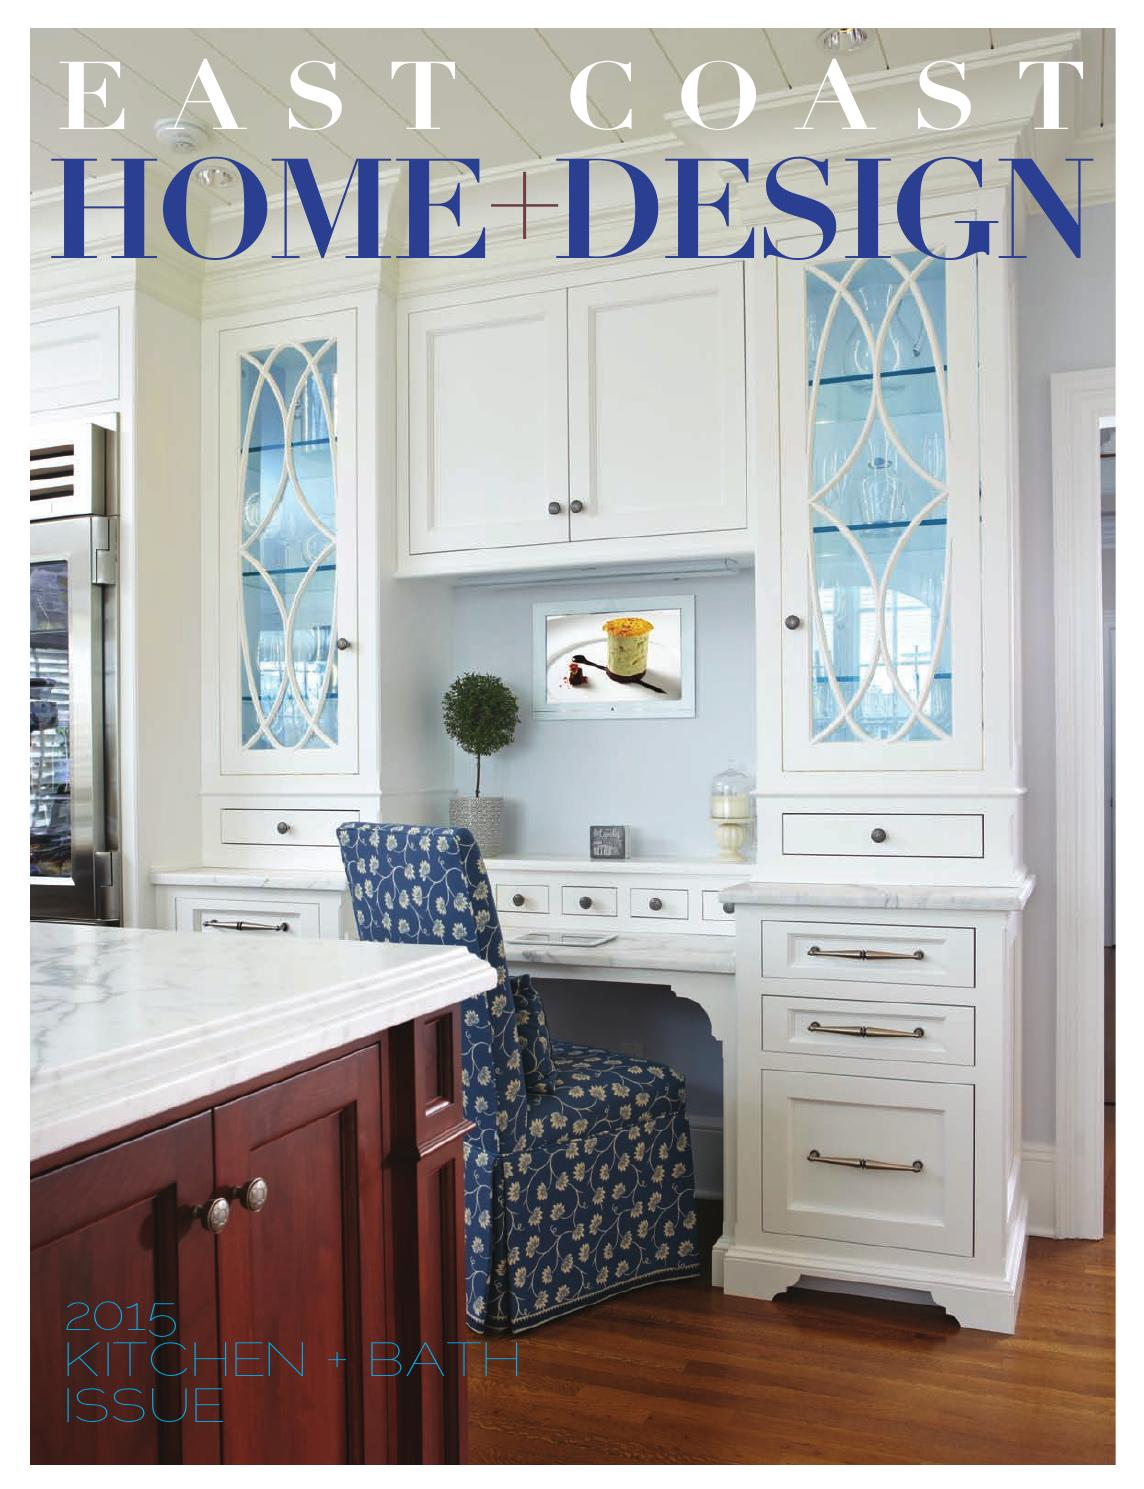 2015 annual kitchen bath issue by east coast home. Black Bedroom Furniture Sets. Home Design Ideas